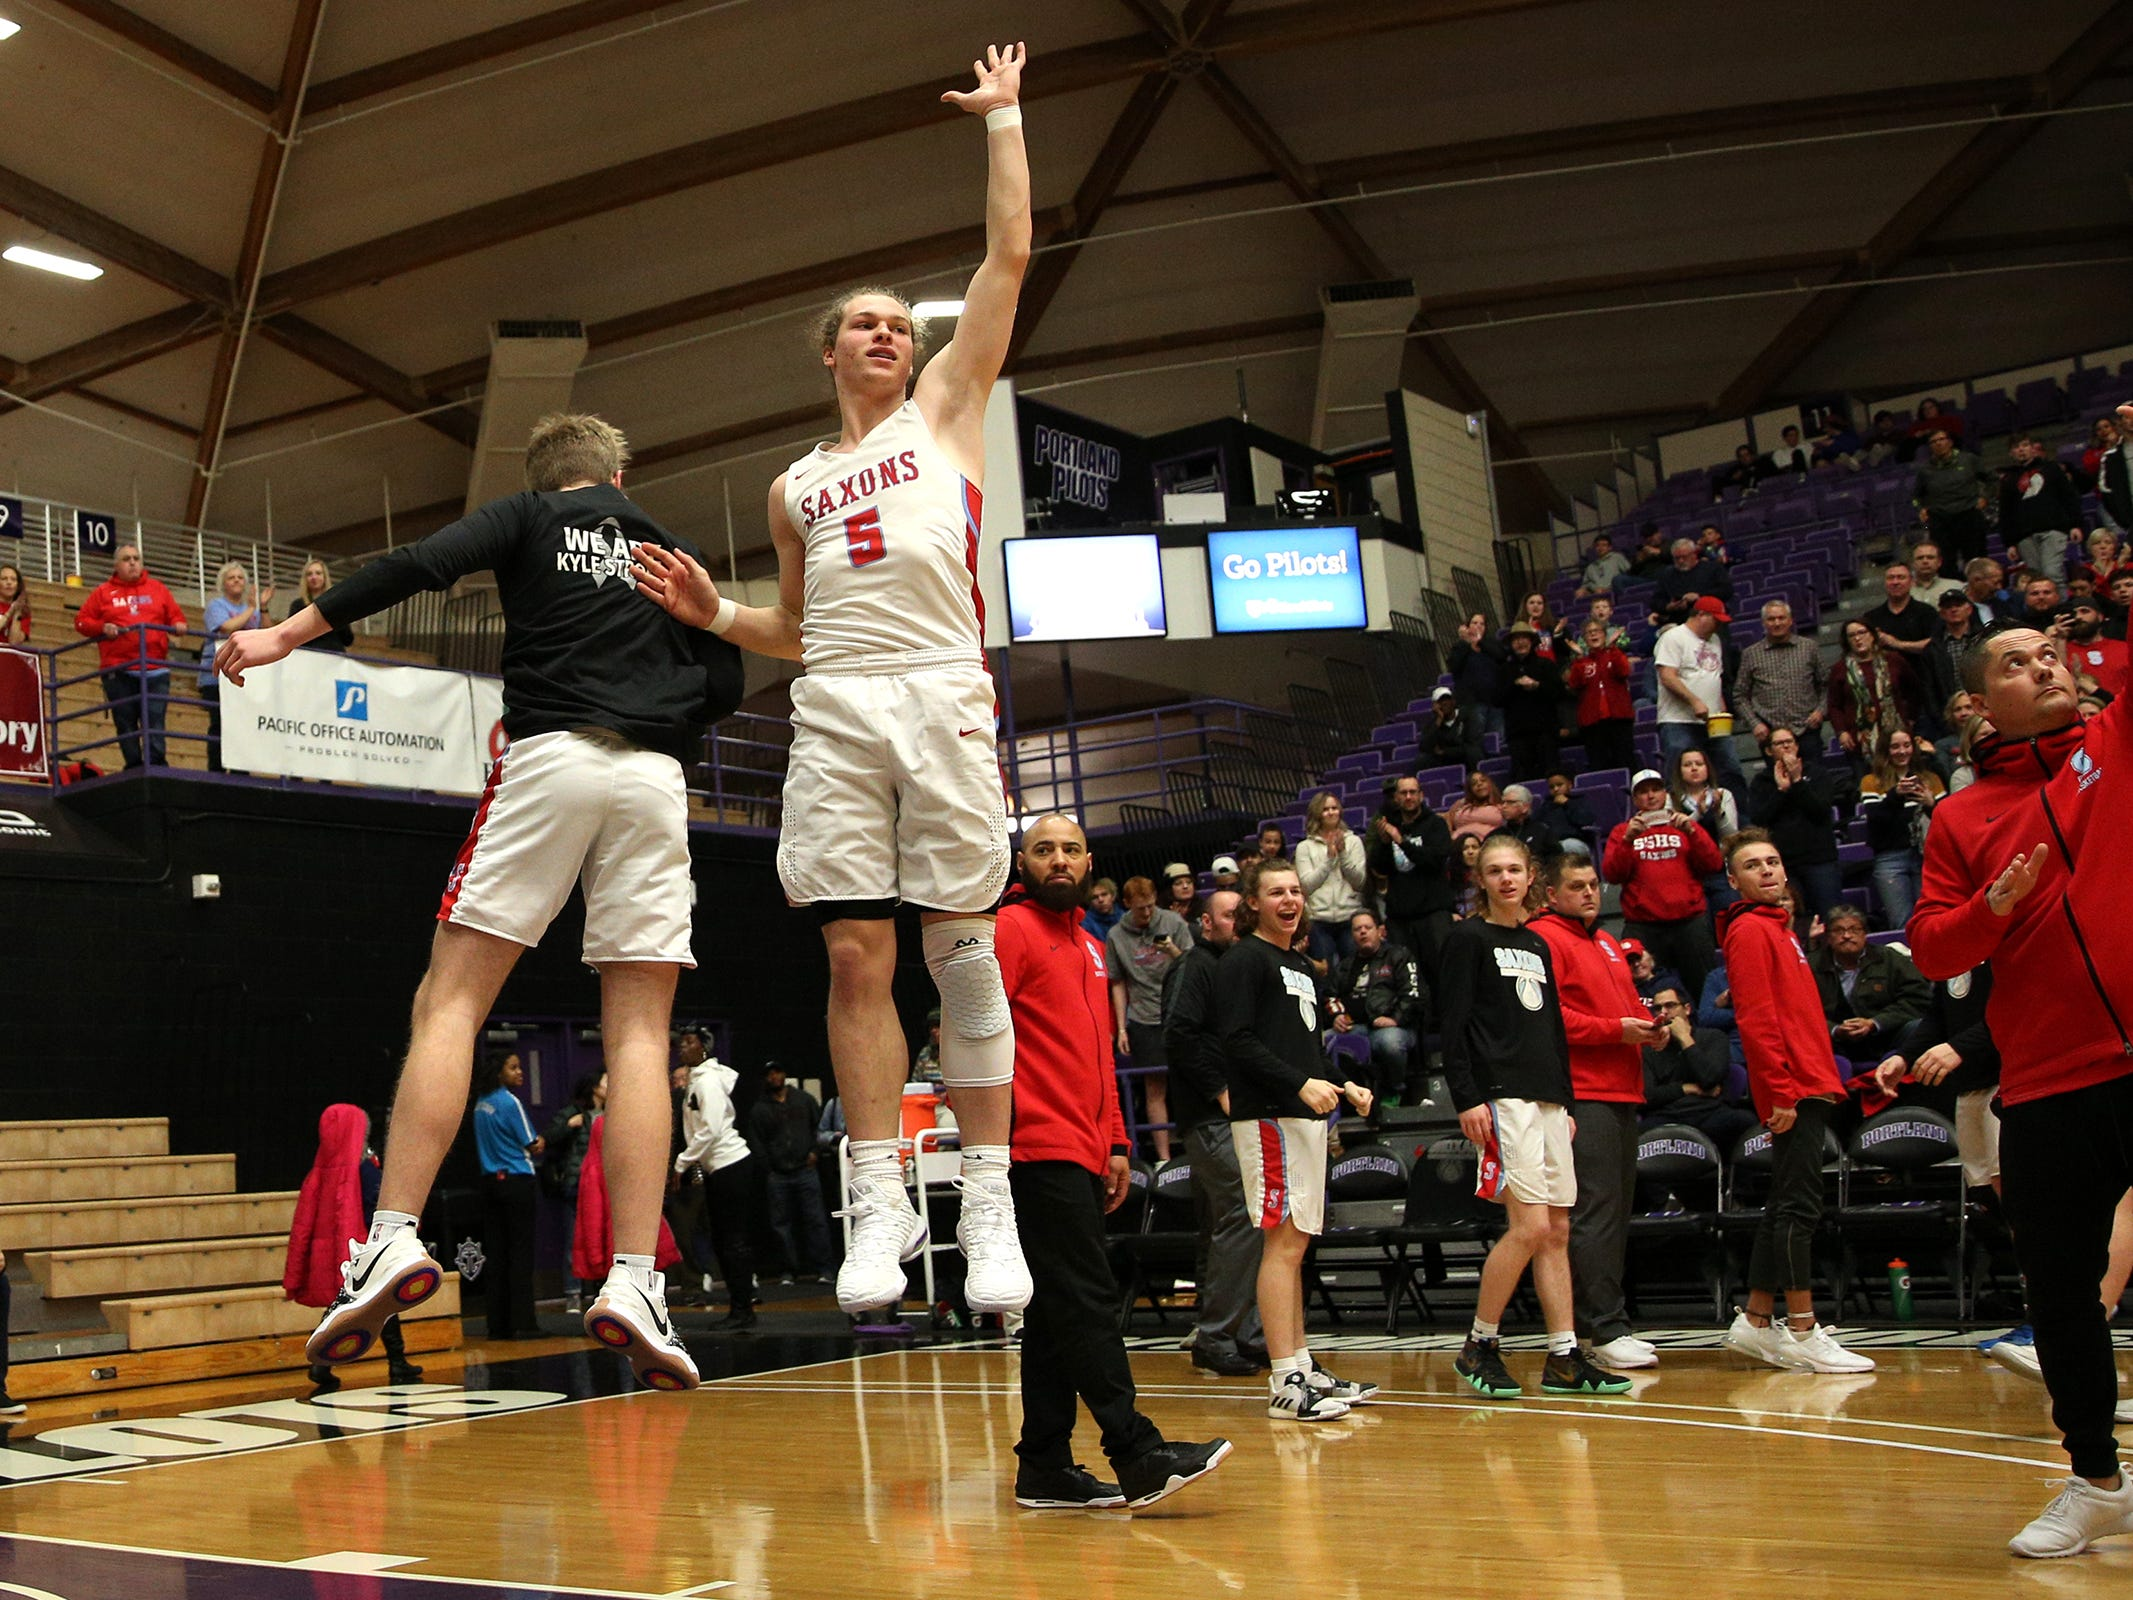 South Salem's Ryan Brown (5) jumps up as he is introduced in the starting lineup during the South Salem vs. Jefferson boys basketball OSAA 6A semifinal game at Chiles Center in Portland on Friday, March 8, 2019.